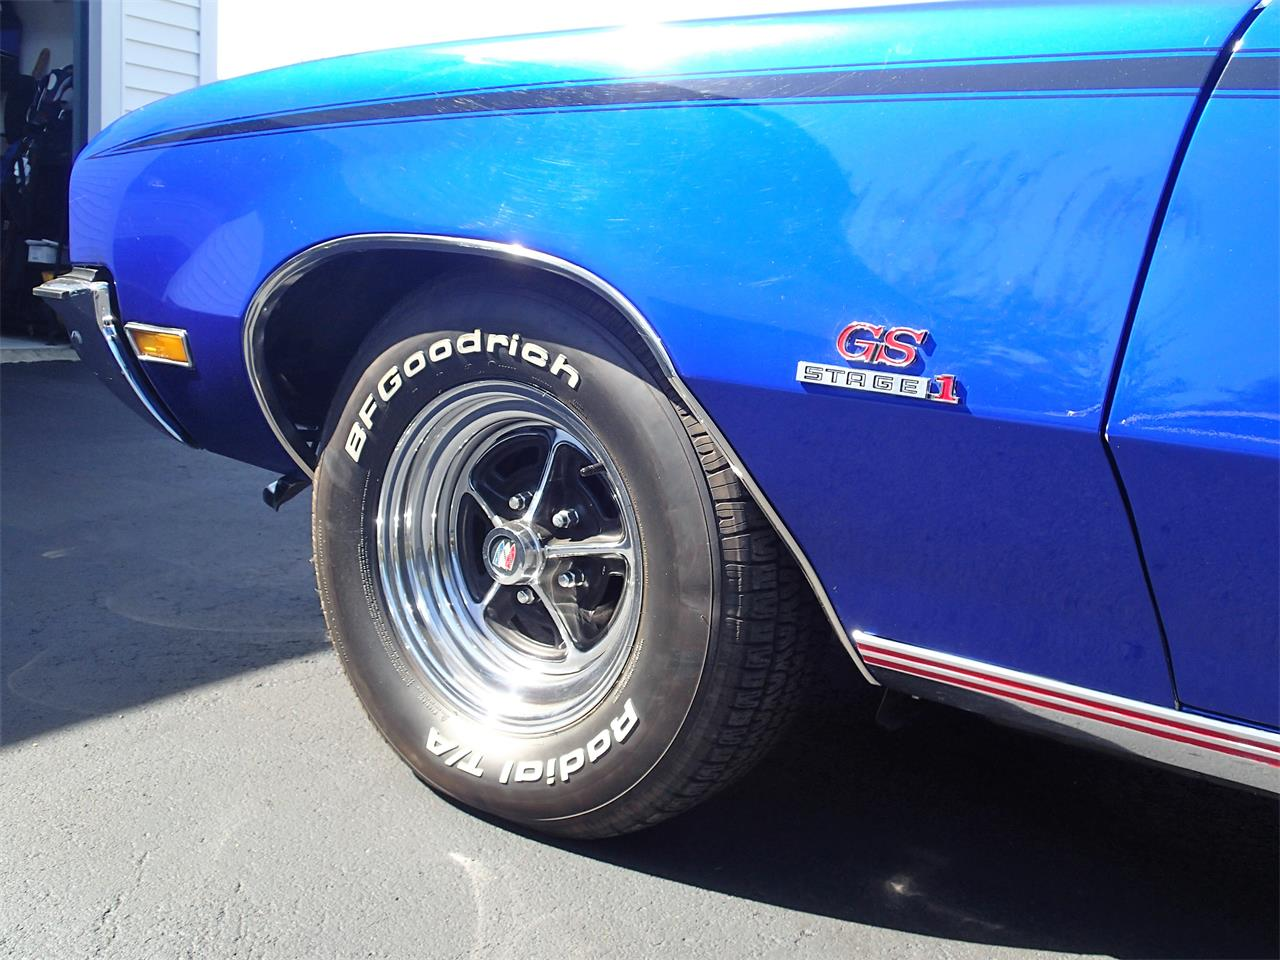 Large Picture of '72 Buick GSX located in Gorham Maine - $21,000.00 Offered by a Private Seller - JGI5